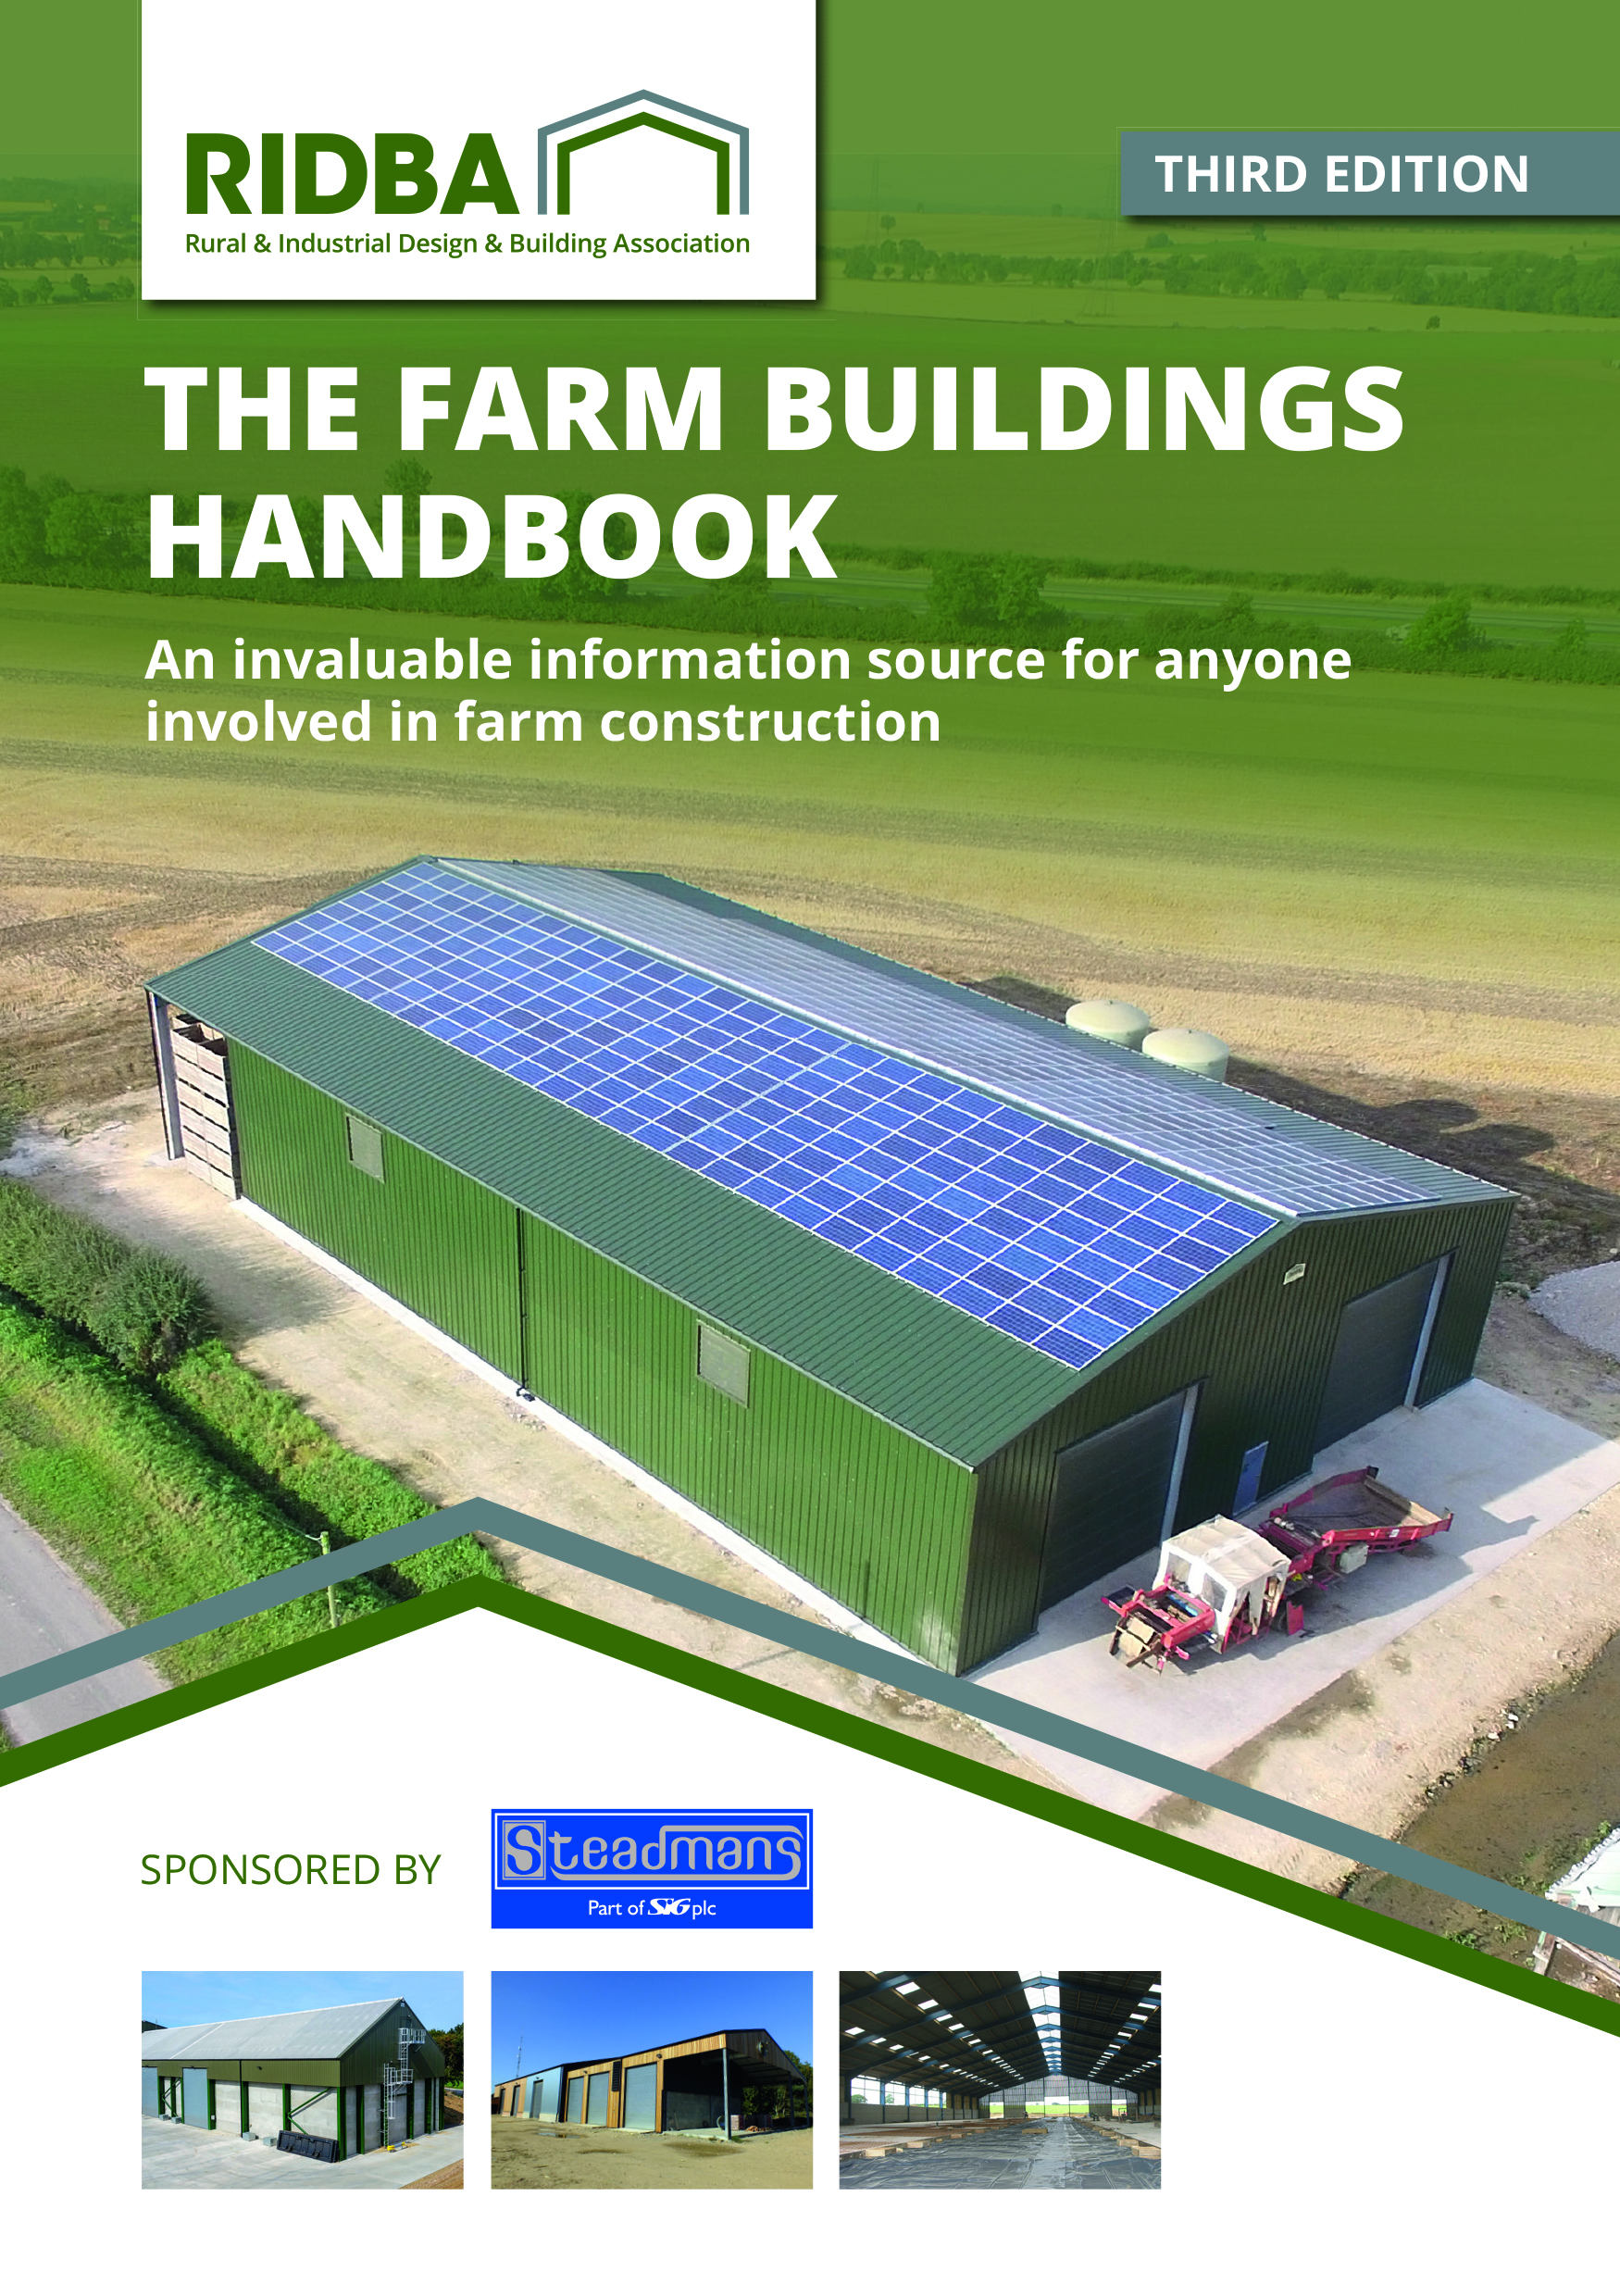 ridba_farm_buildings_covers.indd